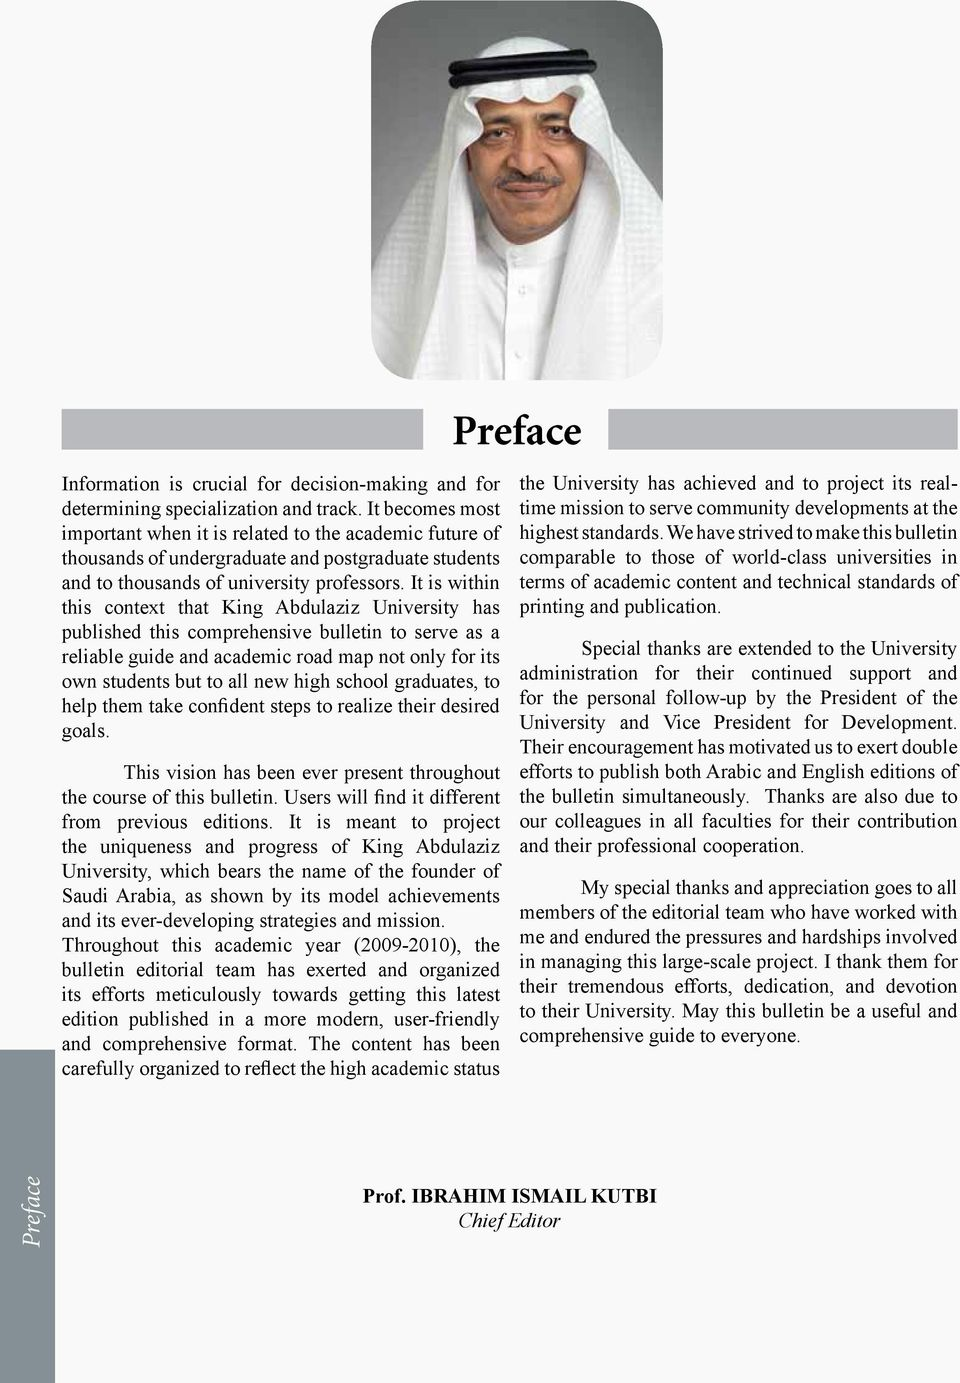 It is within this context that King Abdulaziz University has published this comprehensive bulletin to serve as a reliable guide and academic road map not only for its own students but to all new high